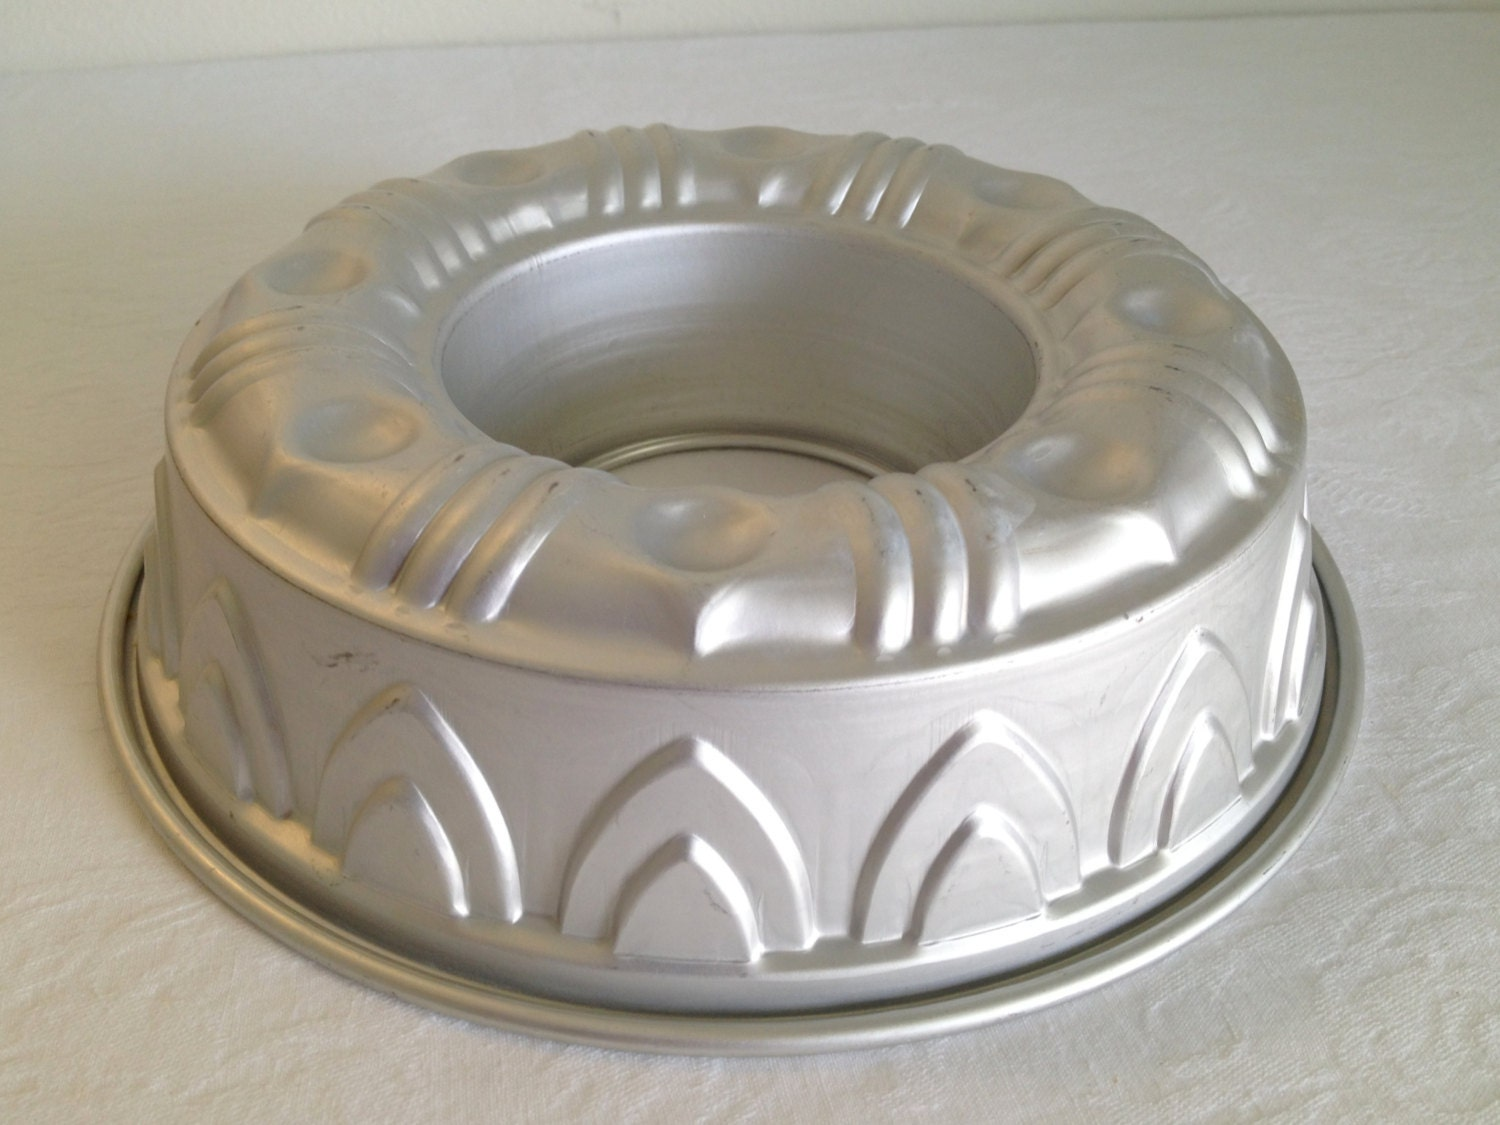 vintage mirro aluminum ring mold cake pan fancy bundt cake pan. Black Bedroom Furniture Sets. Home Design Ideas